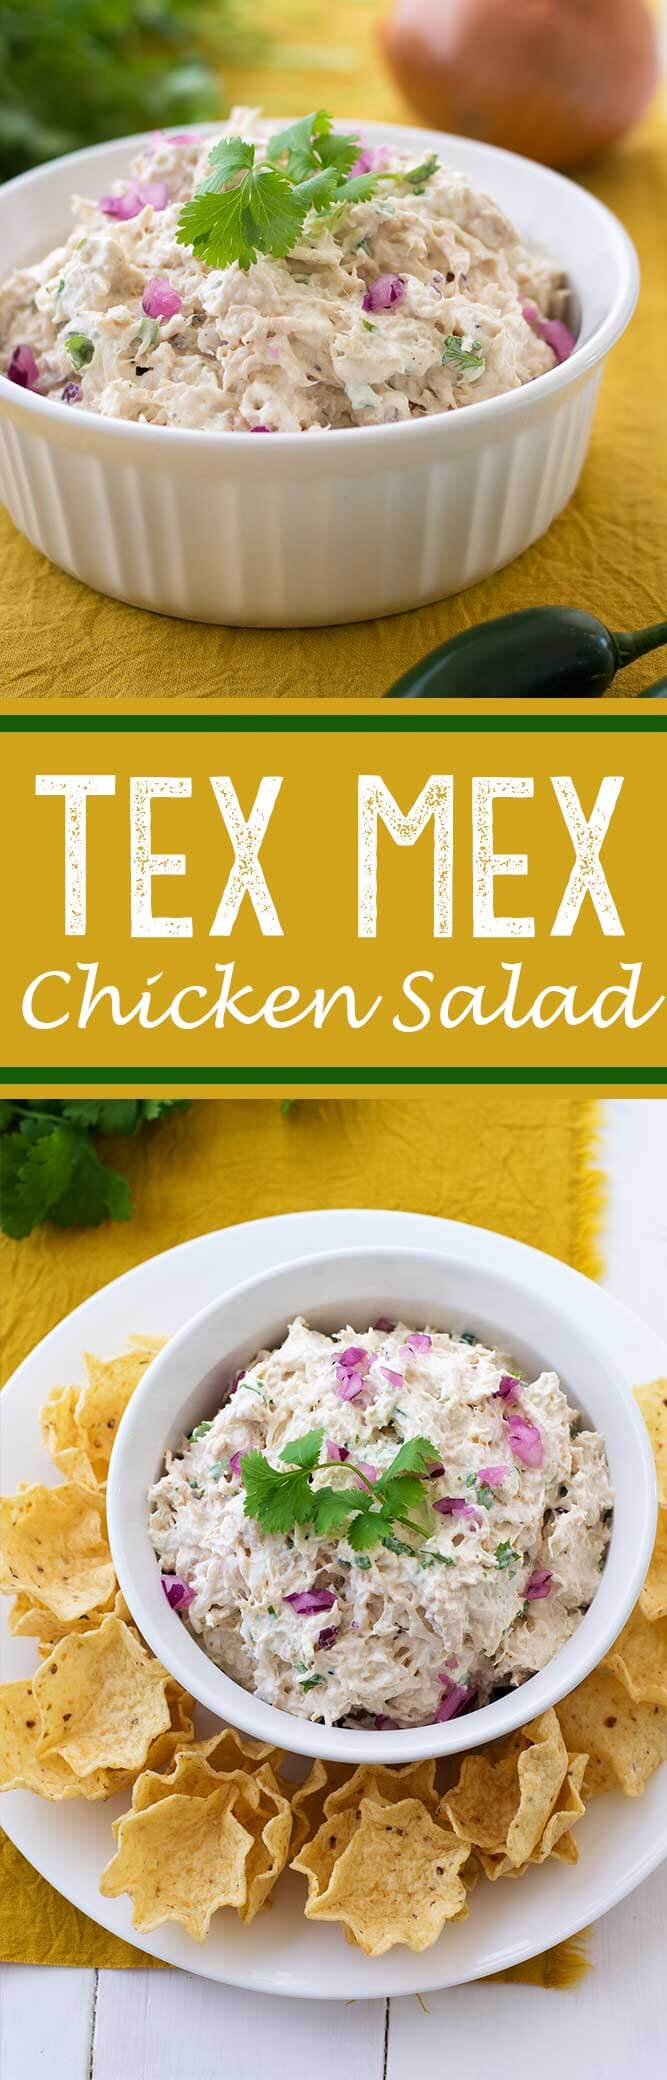 TEX MEX Chicken Salad makes for great sandwiches.